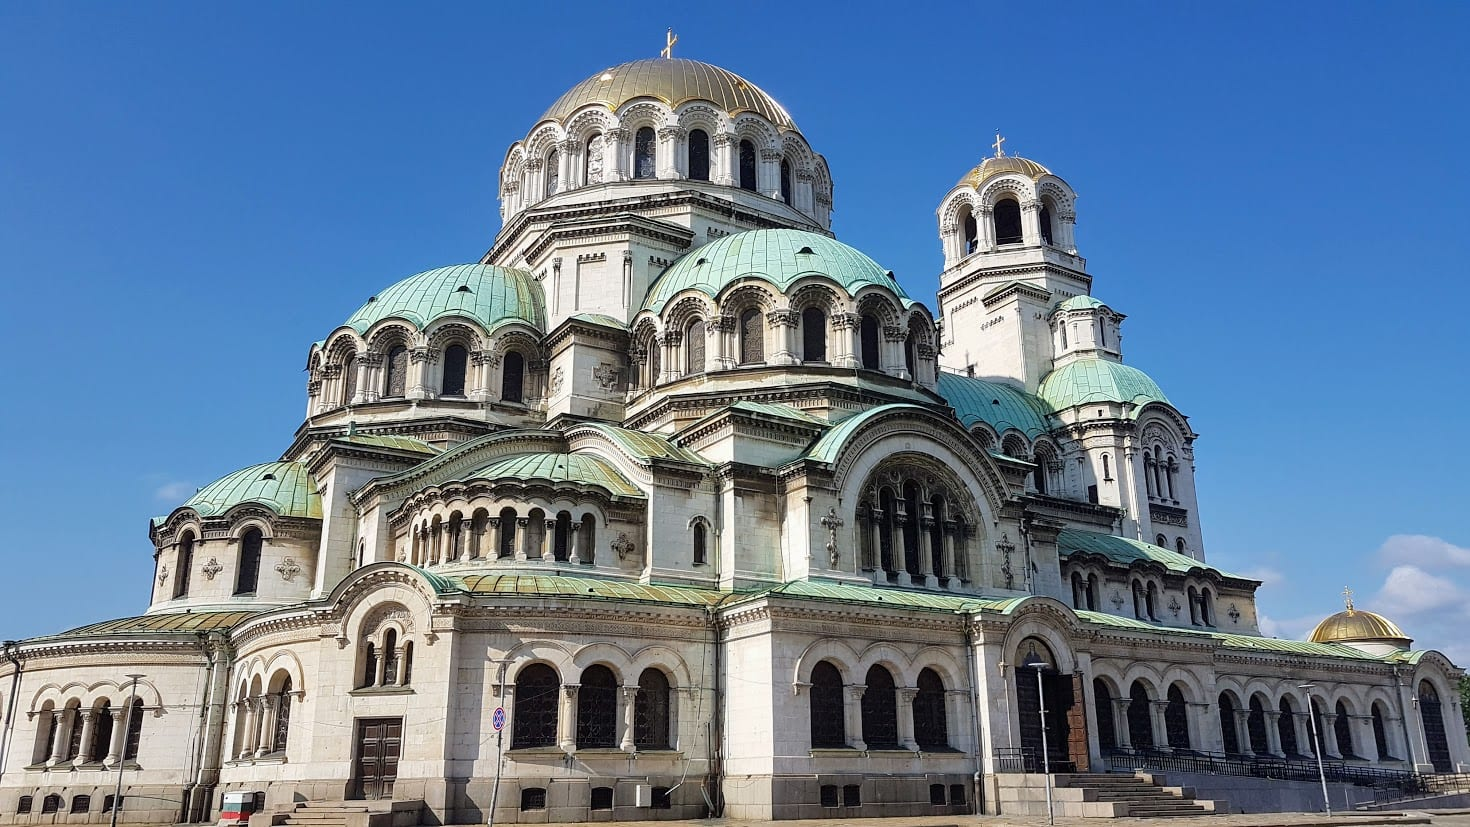 Things to see in Sofia in 1 day